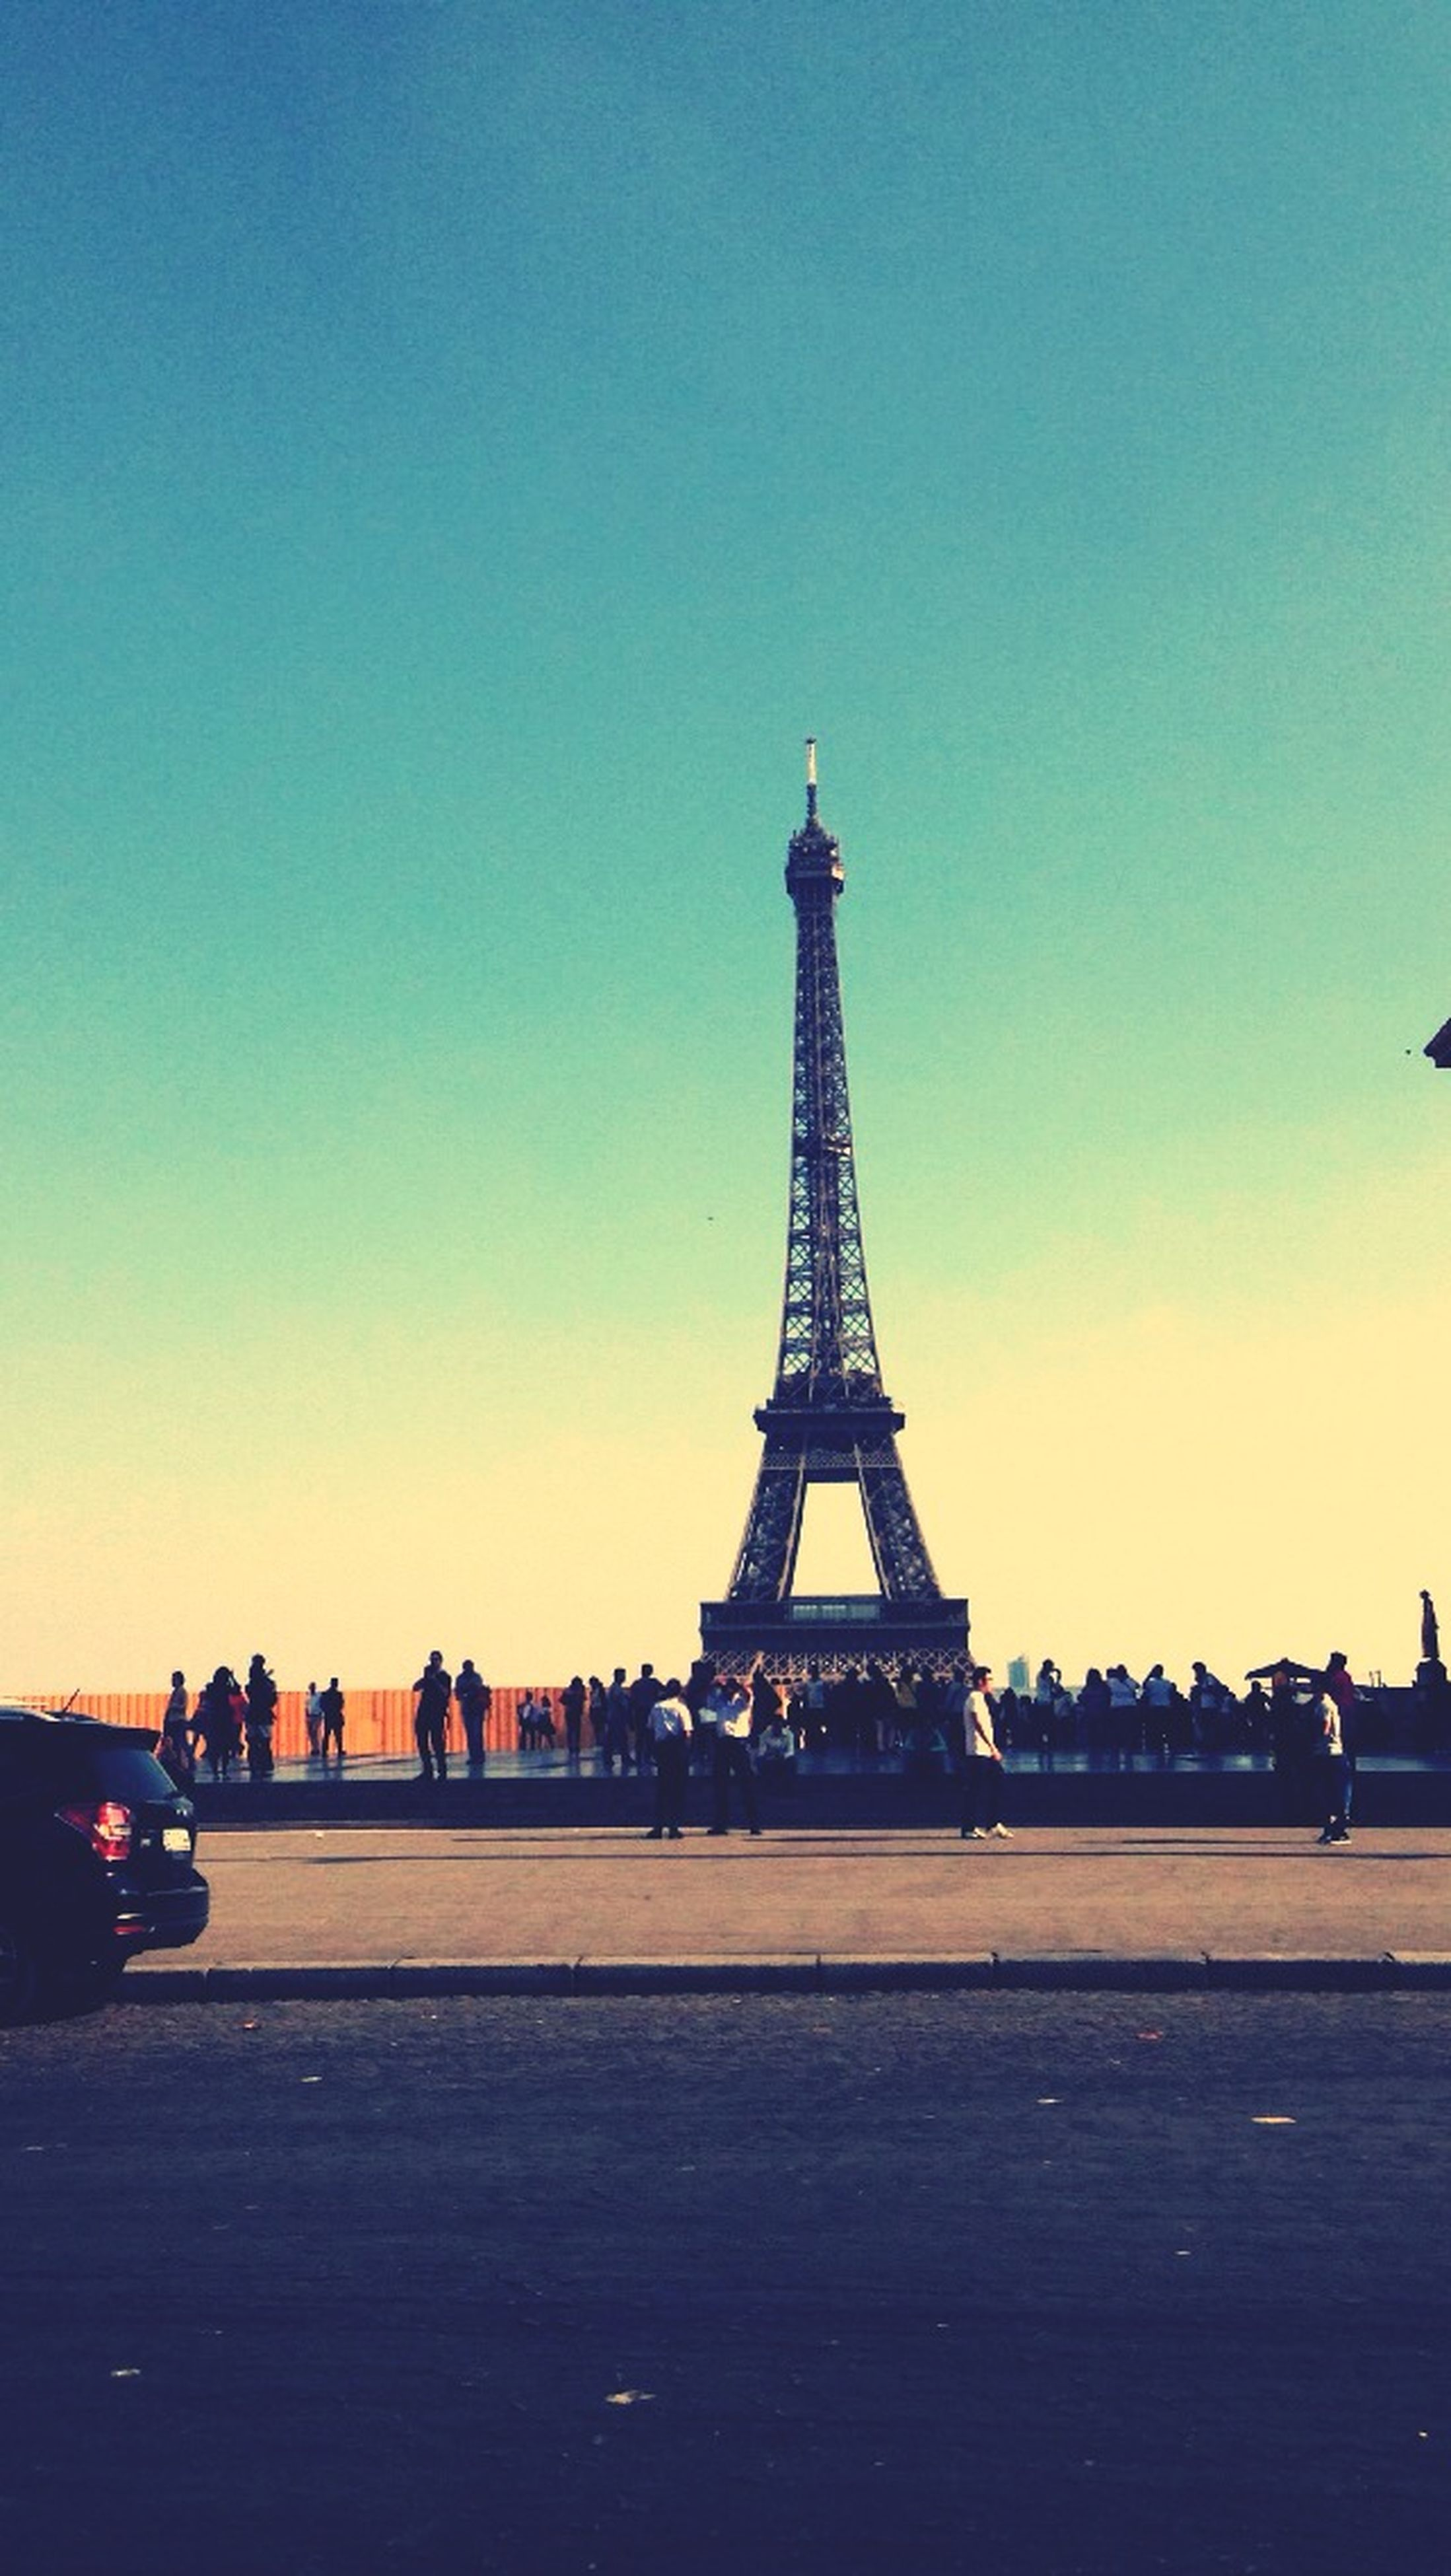 clear sky, copy space, eiffel tower, built structure, architecture, international landmark, famous place, travel destinations, transportation, travel, metal, capital cities, tower, tourism, tall - high, sunset, culture, outdoors, sky, dusk